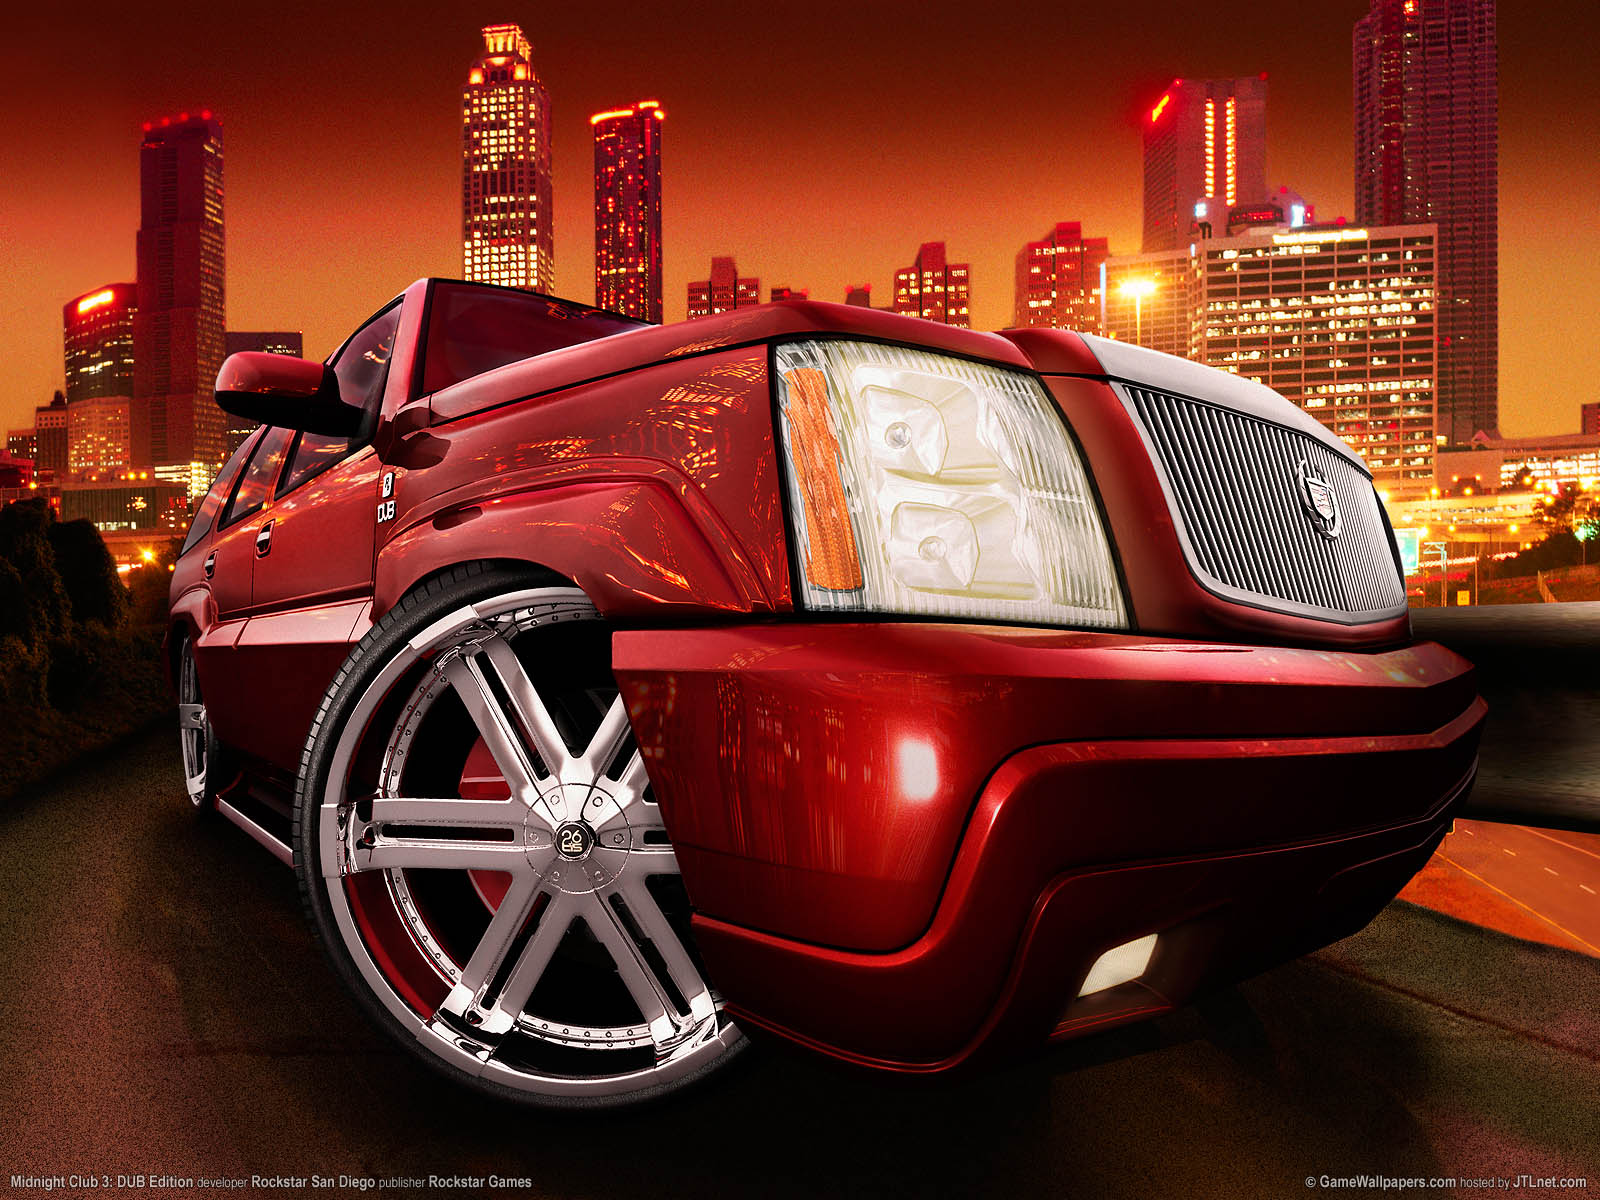 Wallpapers de carros tuning - Autos Tunados